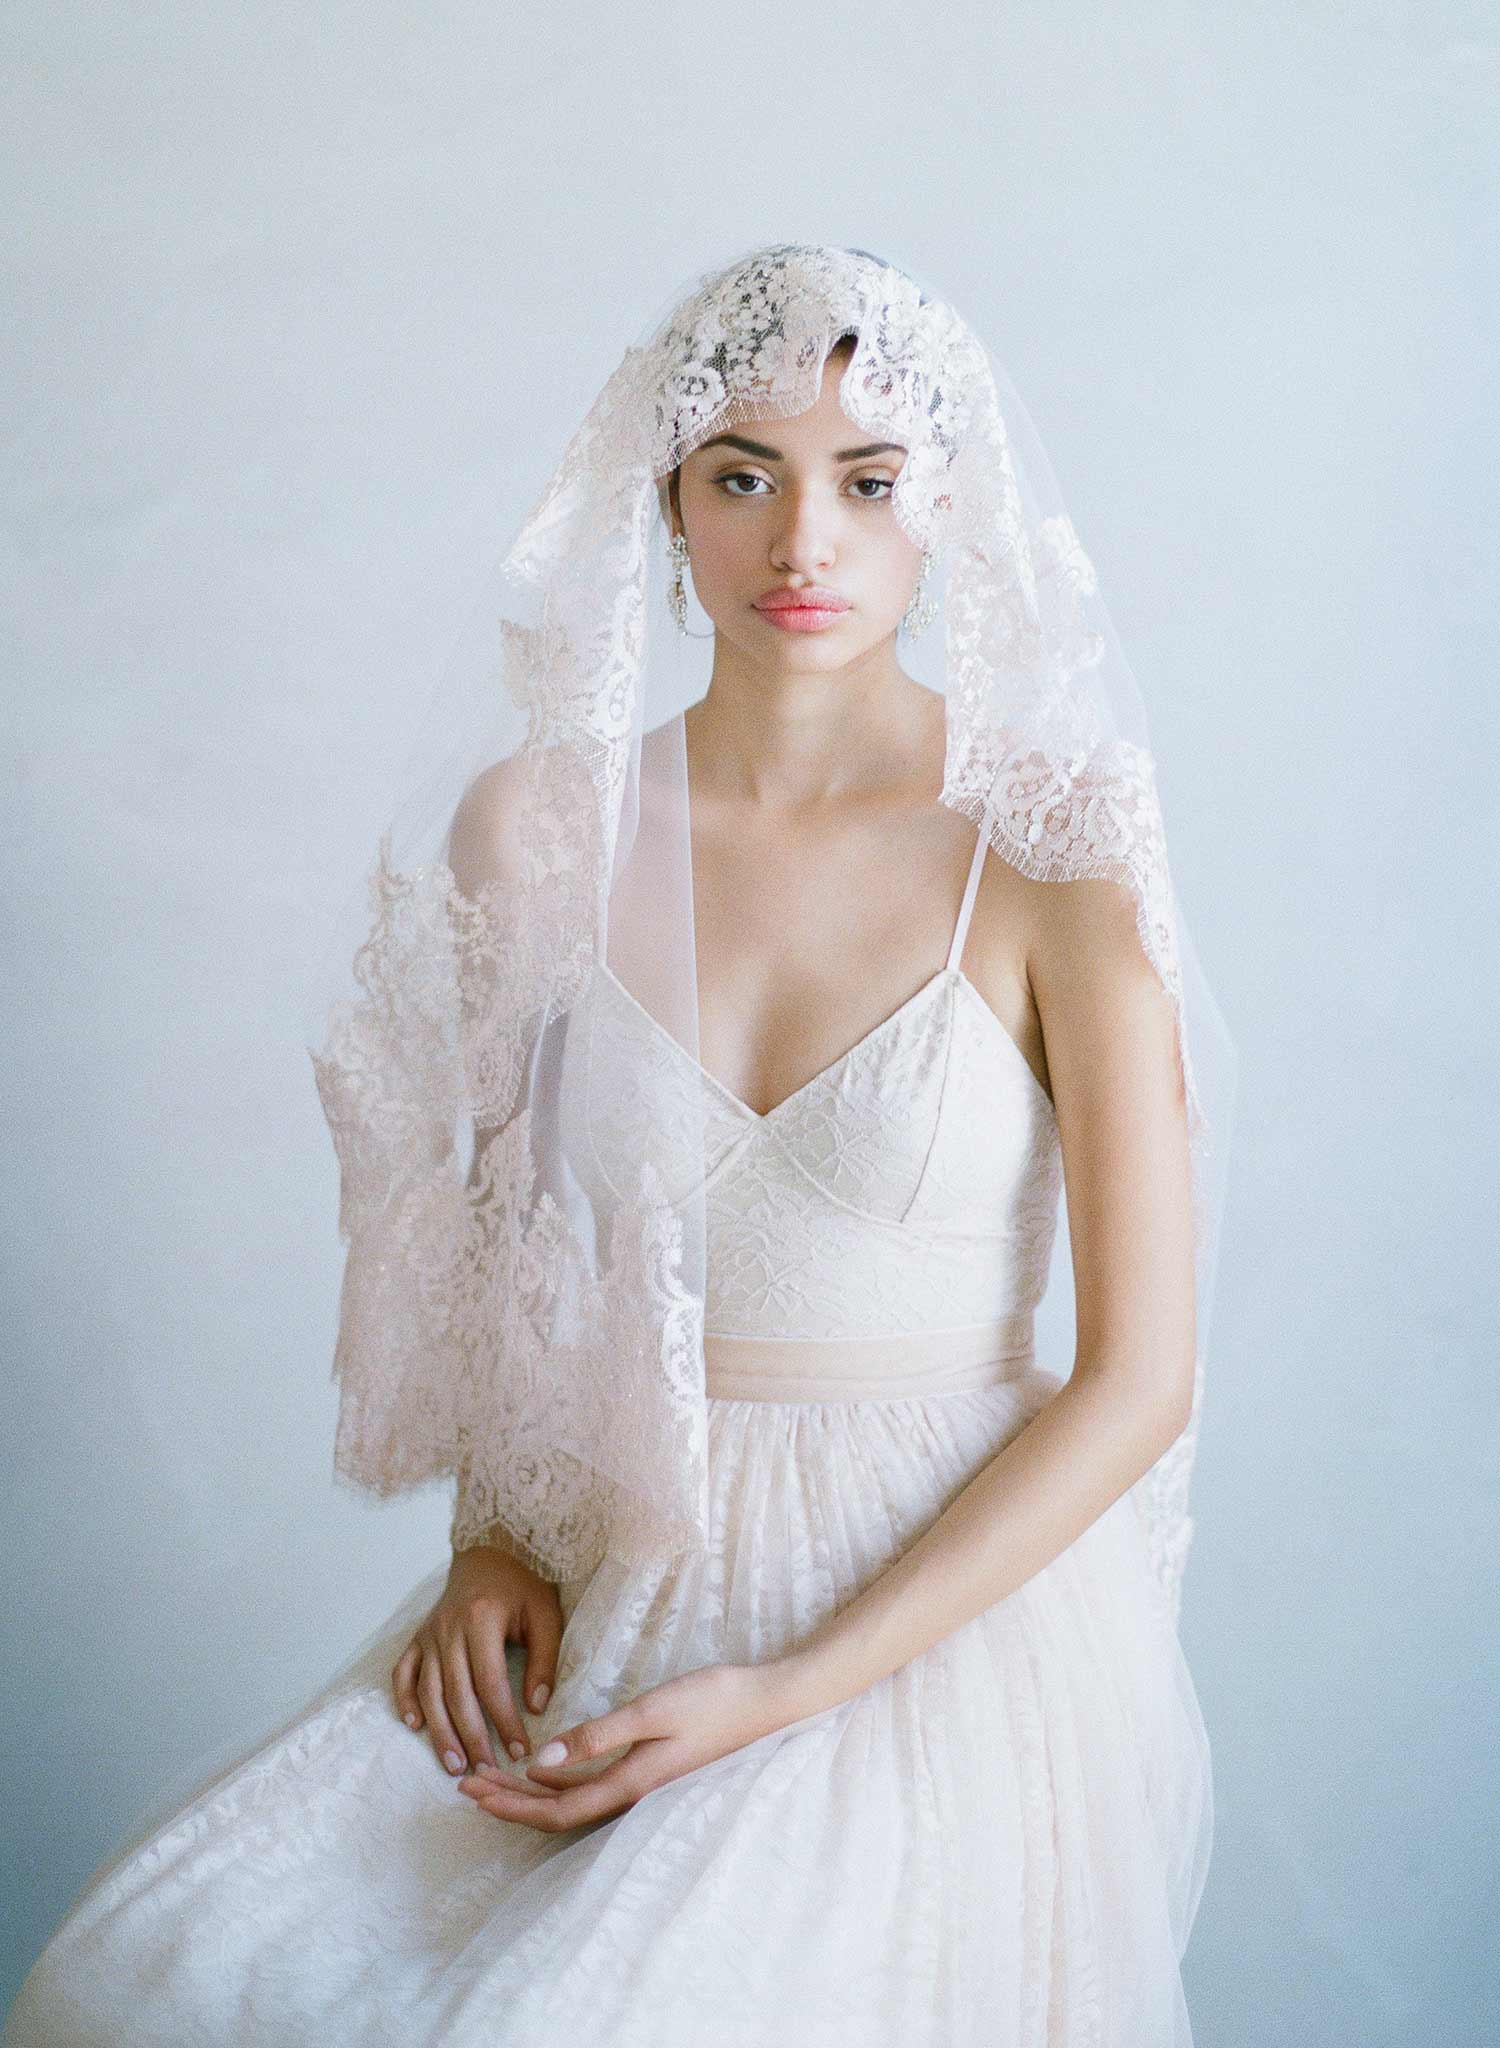 Blushing confections french lace veil - Style #851